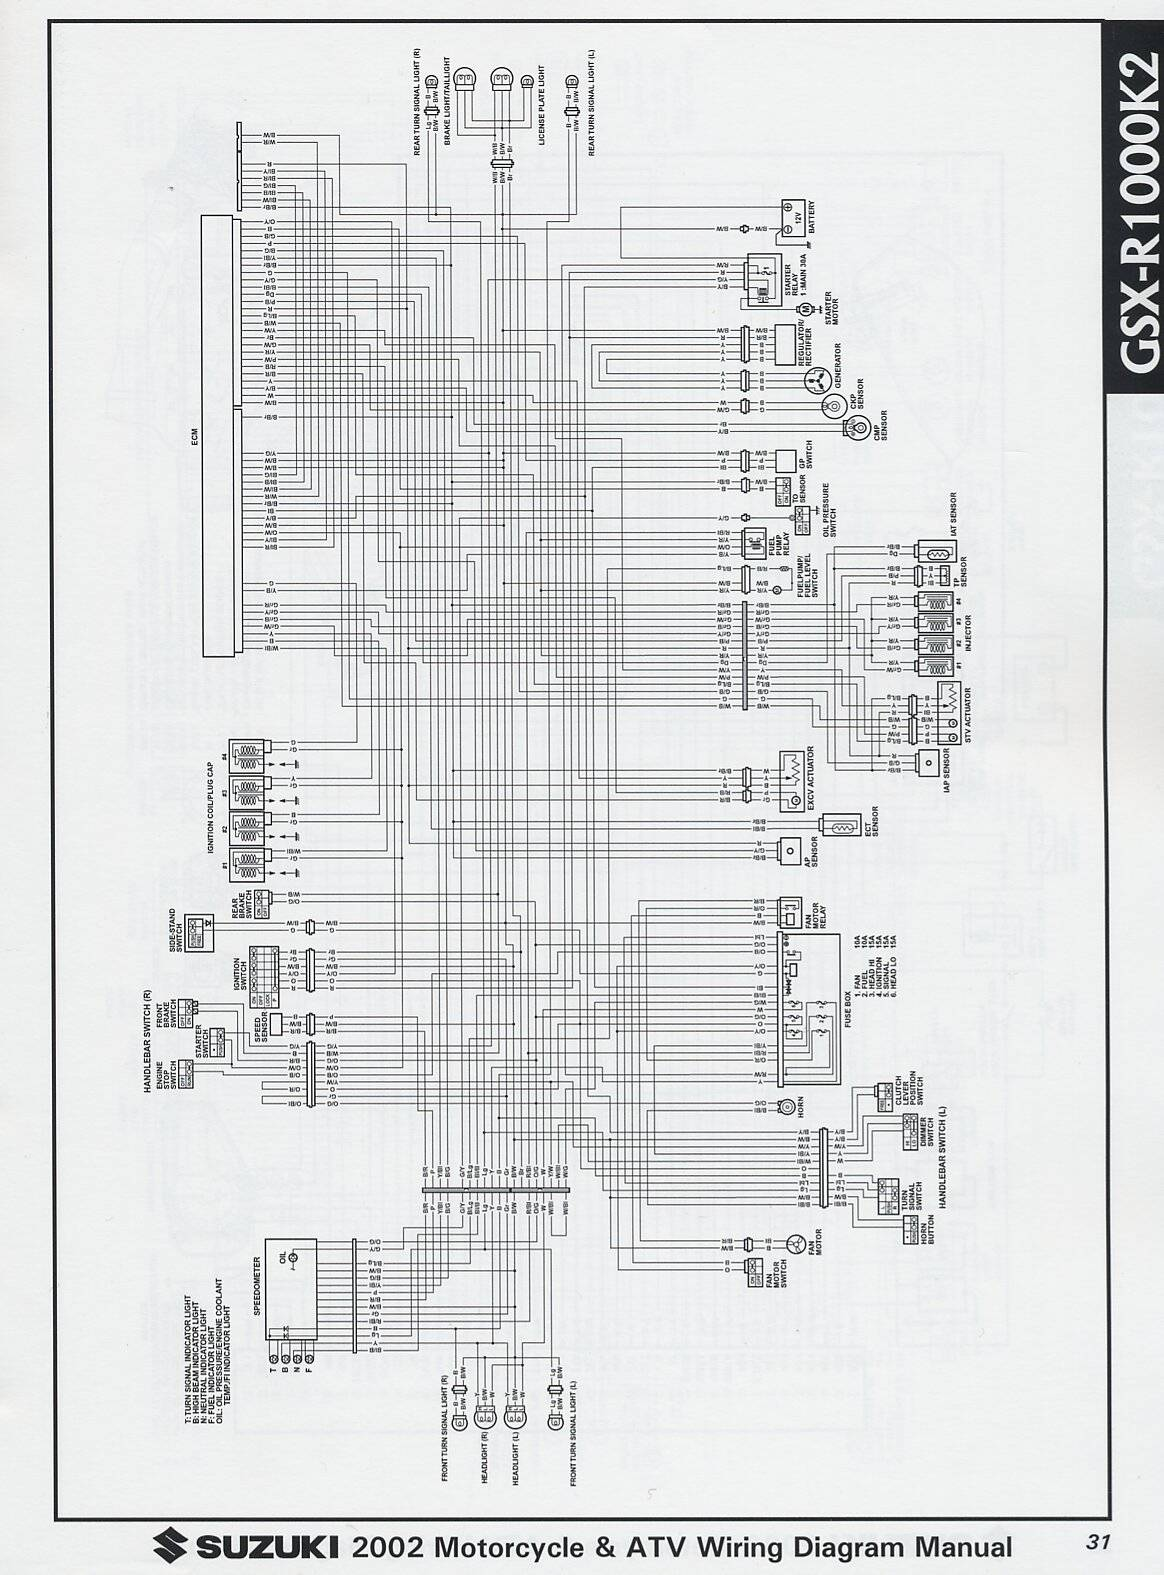 02 dodge neon wiring diagram schematic diagram2000 dodge neon horn wiring wiring diagram online 2005 dodge neon wiring diagram 2000 dodge neon